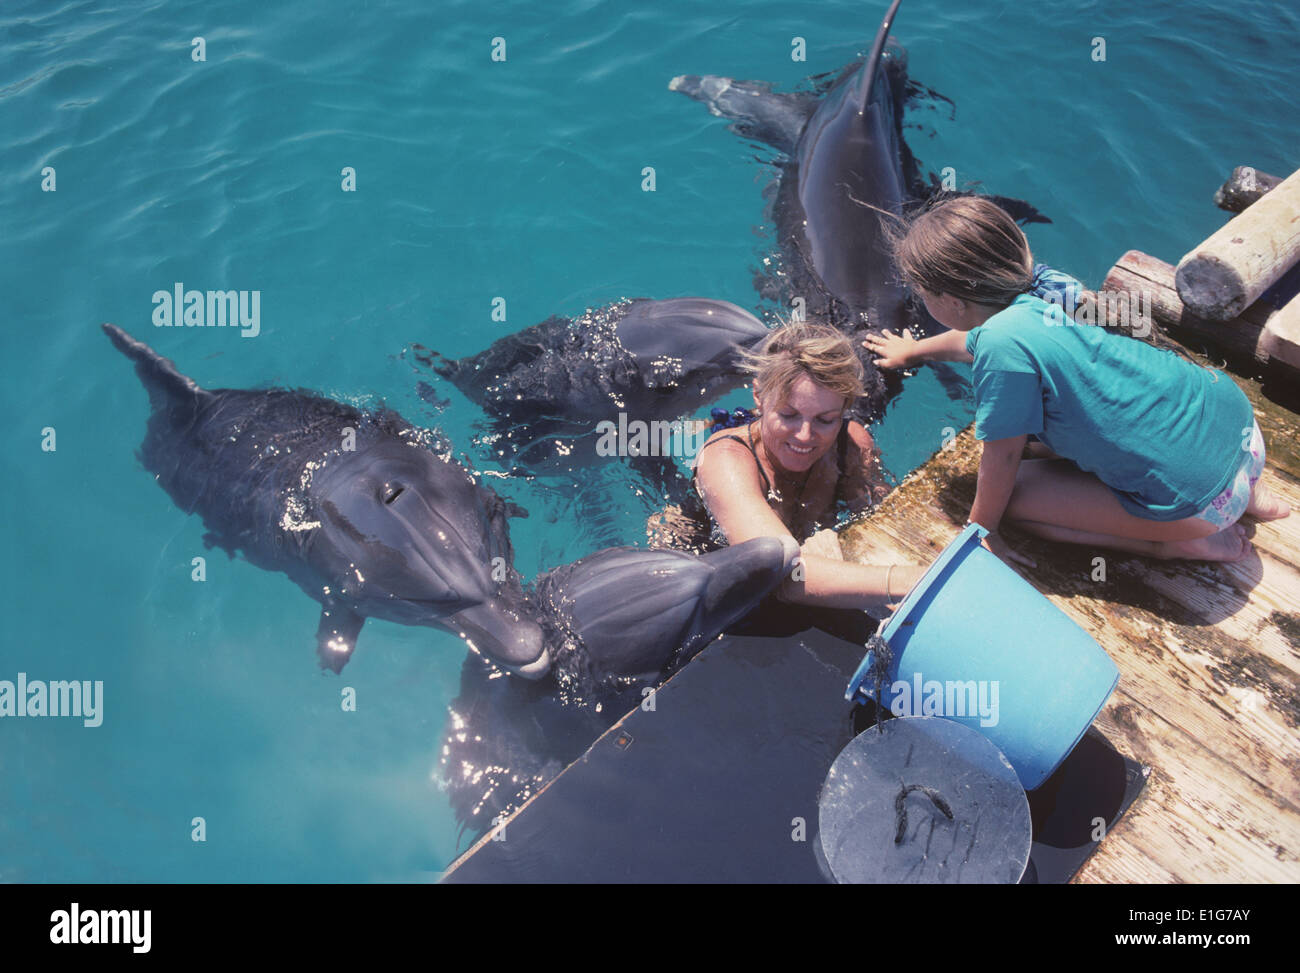 Dolphin trainer interacts with Bottlenose Dolphin (Tursiops truncatus) - Eilat, Israel, Red Sea. - Stock Image